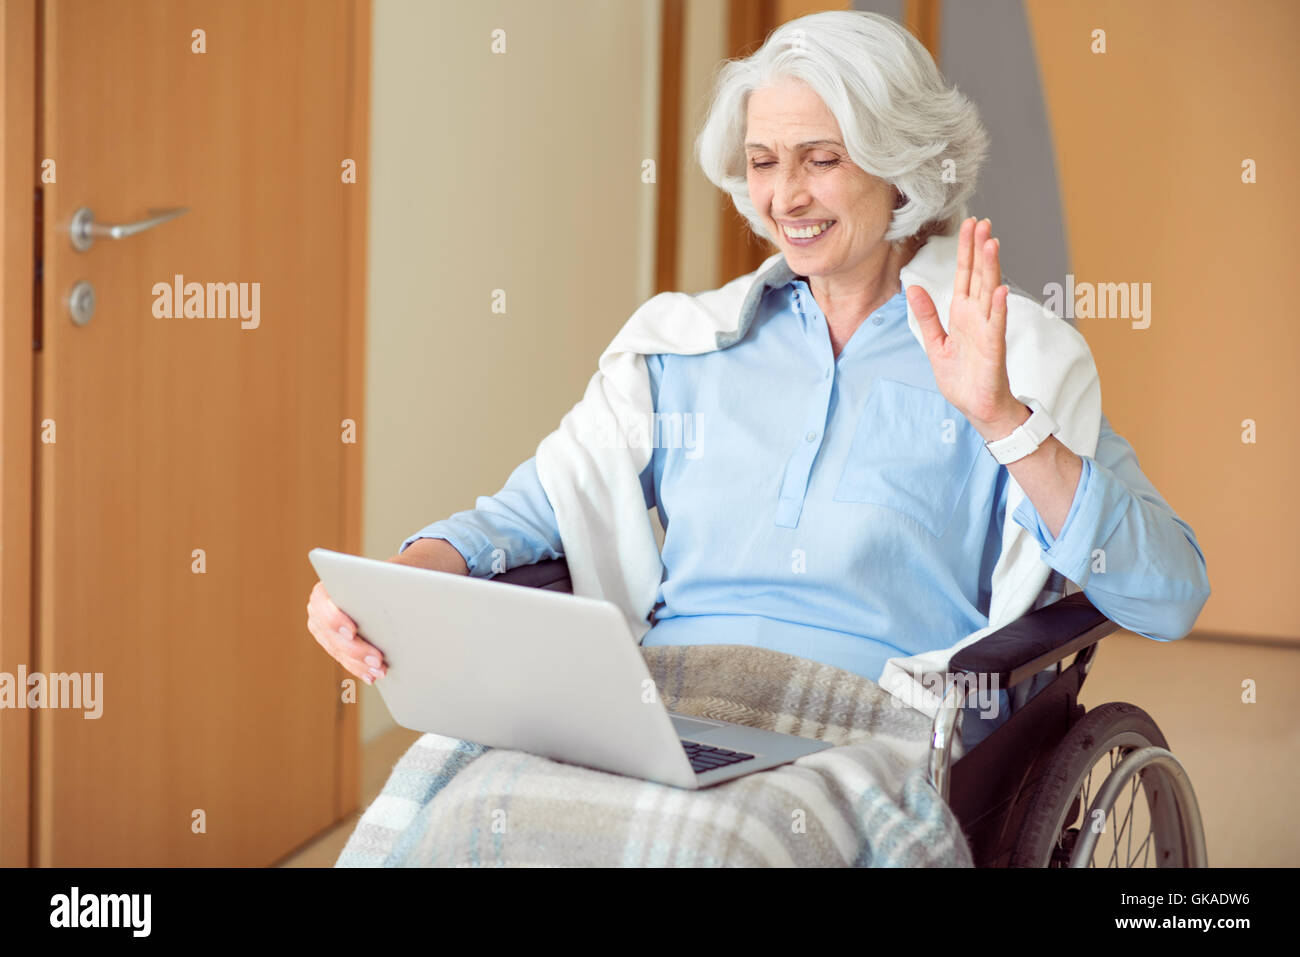 Senior female patient using laptop - Stock Image